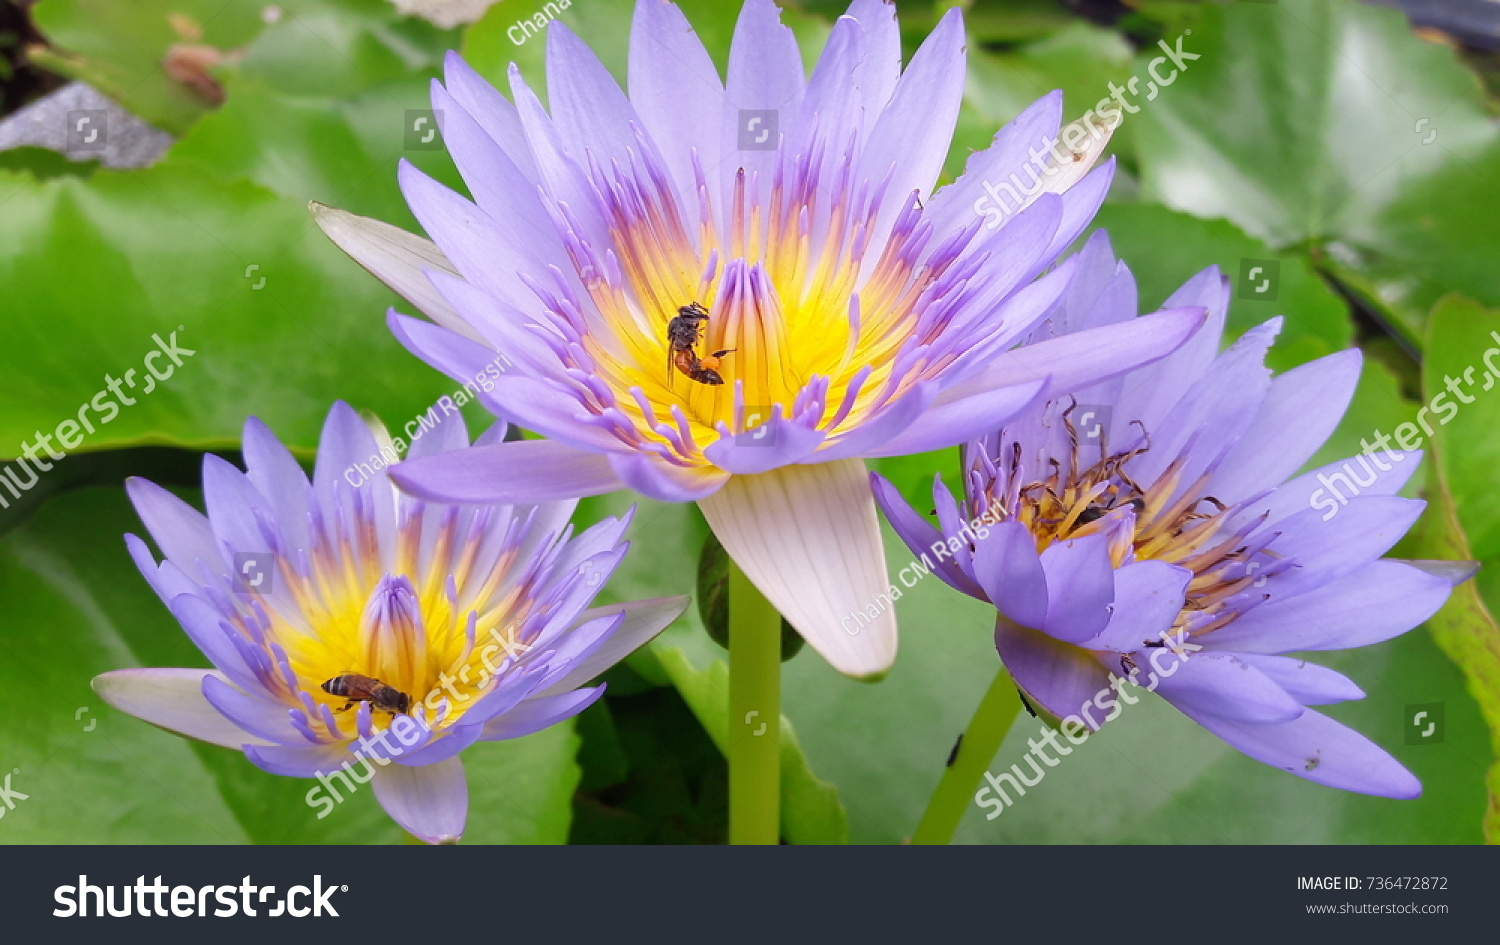 Bees eating lotus flowers stock photo 736472872 shutterstock bees are eating the lotus flowers mightylinksfo Choice Image